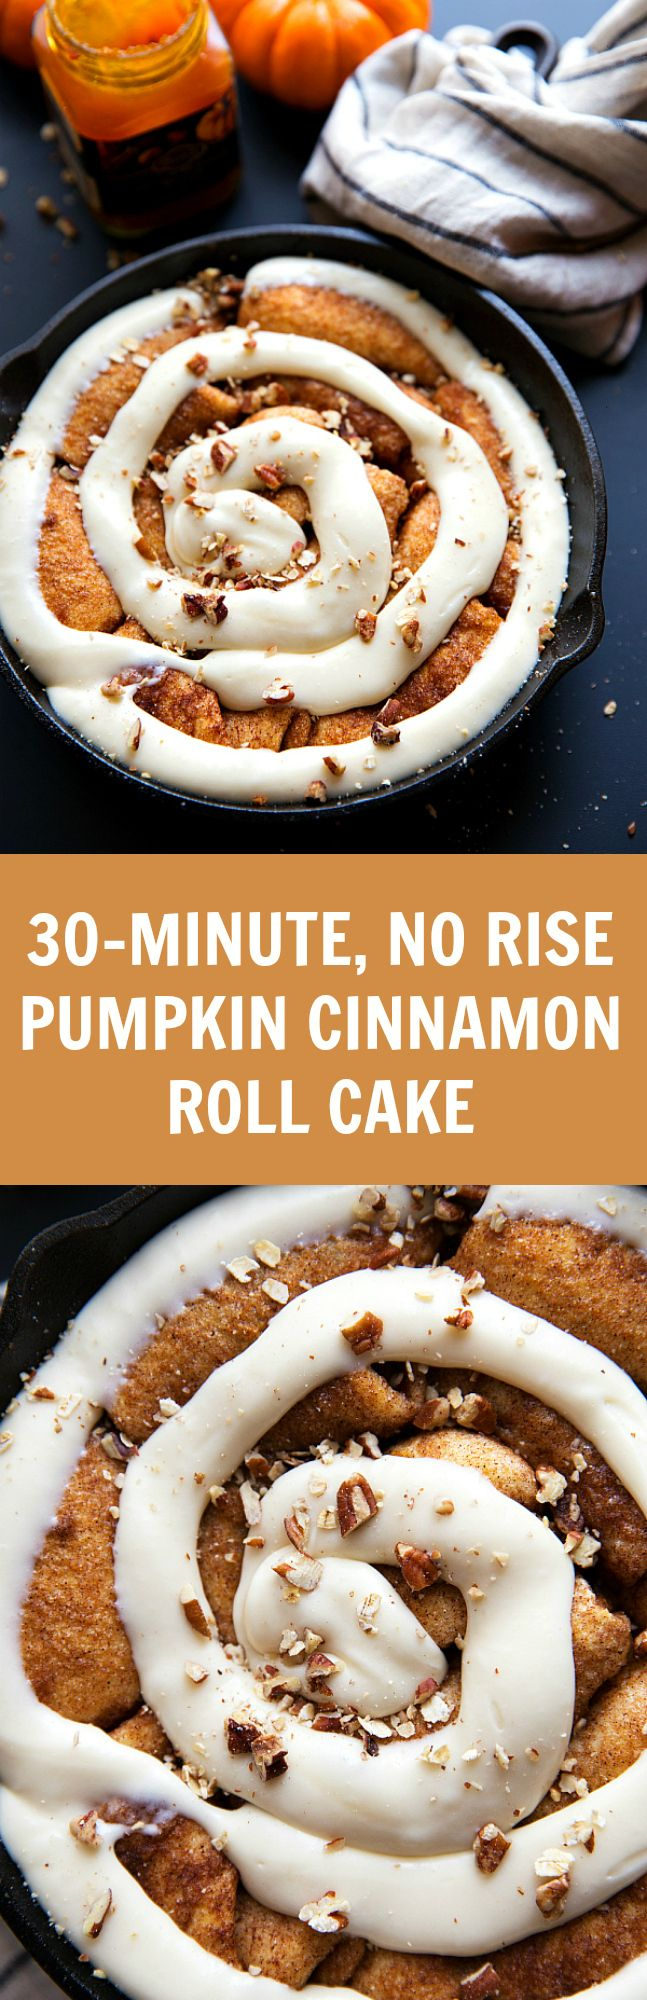 NO yeast or rising!! Easy pumpkin cinnamon roll cake. A great breakfast for Thanksgiving or Holiday get togethers!: